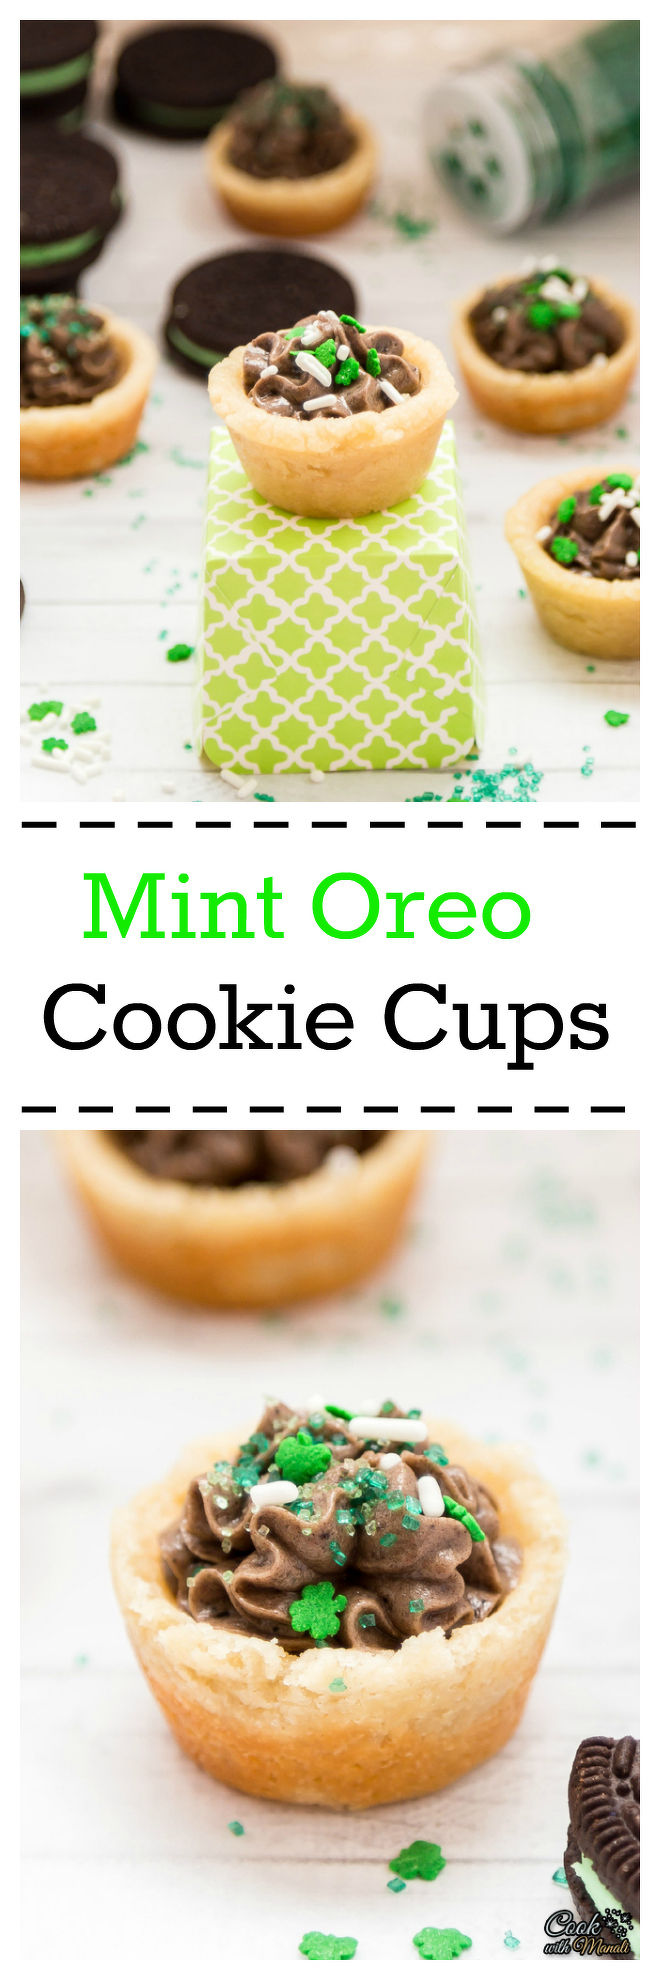 Mint Oreo Cookie Cups New Collage-nocwm